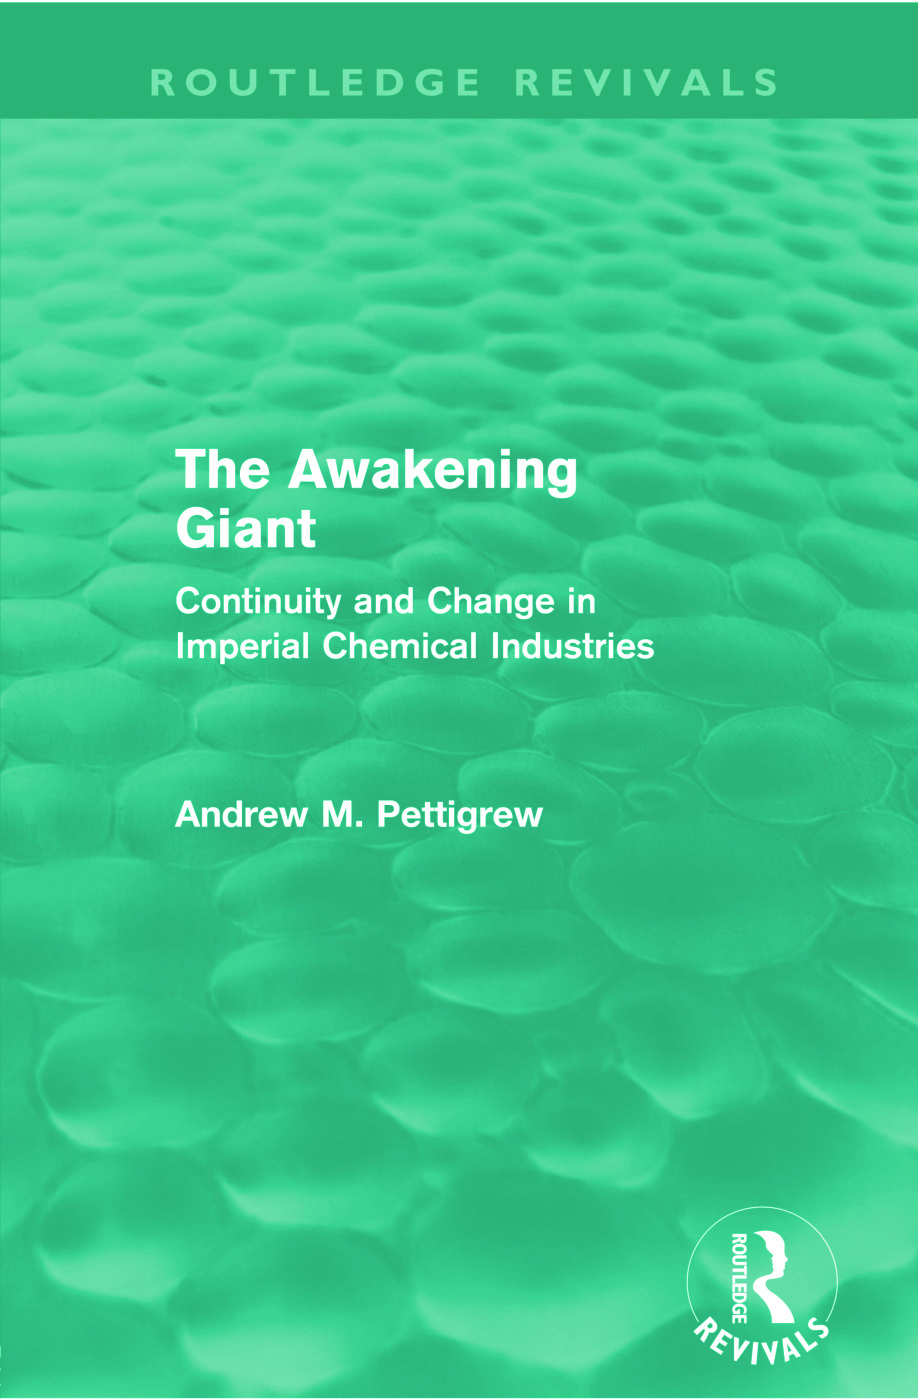 The Awakening Giant (Routledge Revivals): Continuity and Change in ICI, 1st Edition (Paperback) book cover